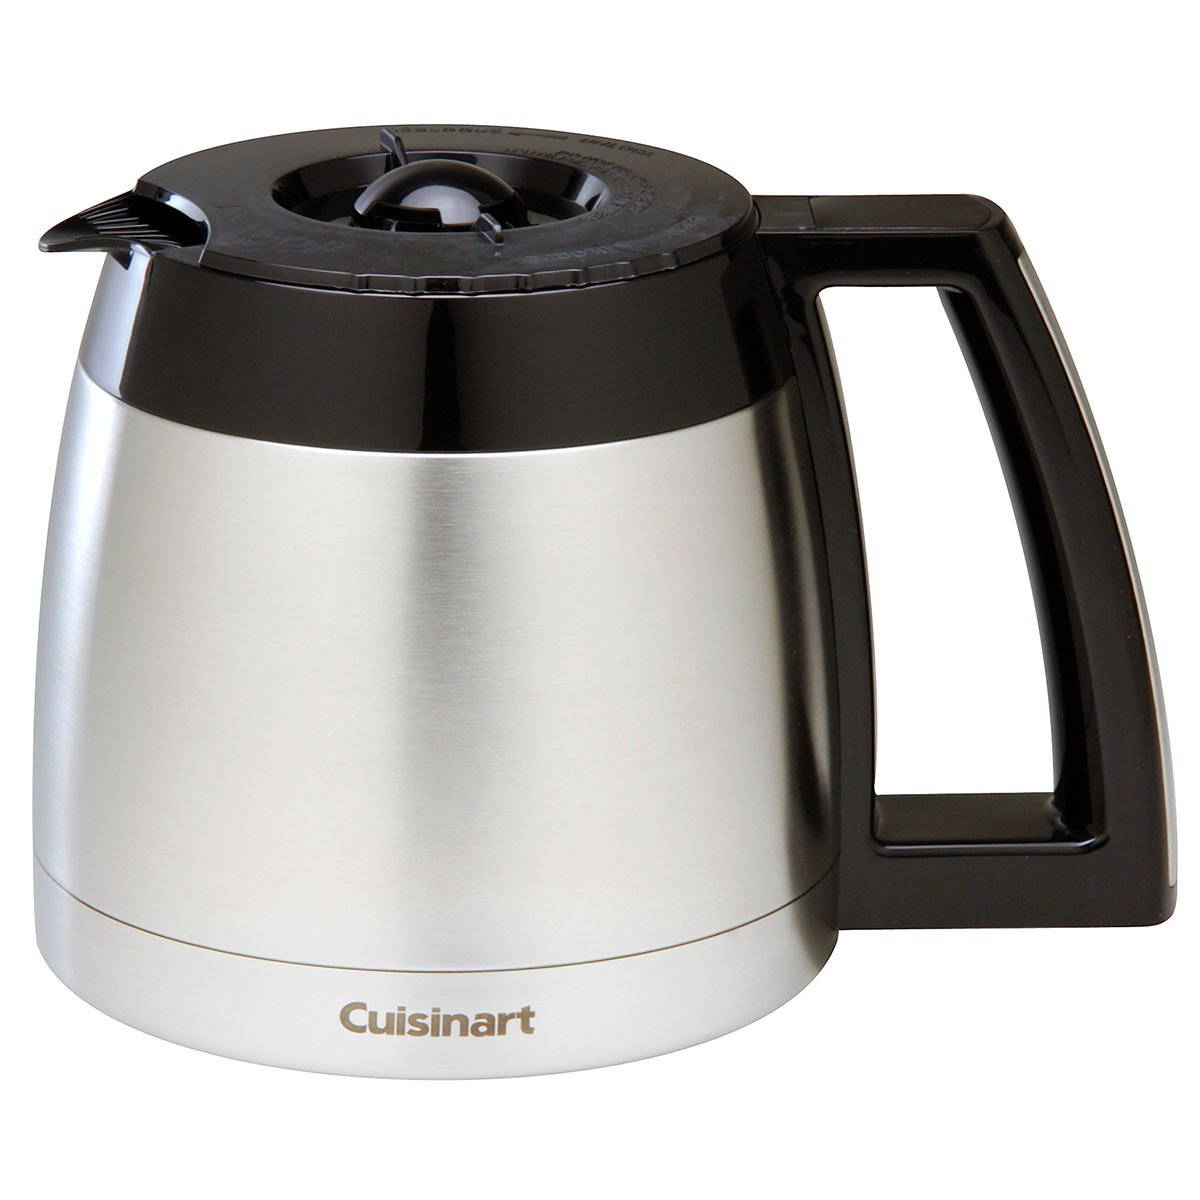 Cuisinart DCC-2400CRF Carafe for 12-Cup Coffeemakers (DCC-2400, DGB-900)